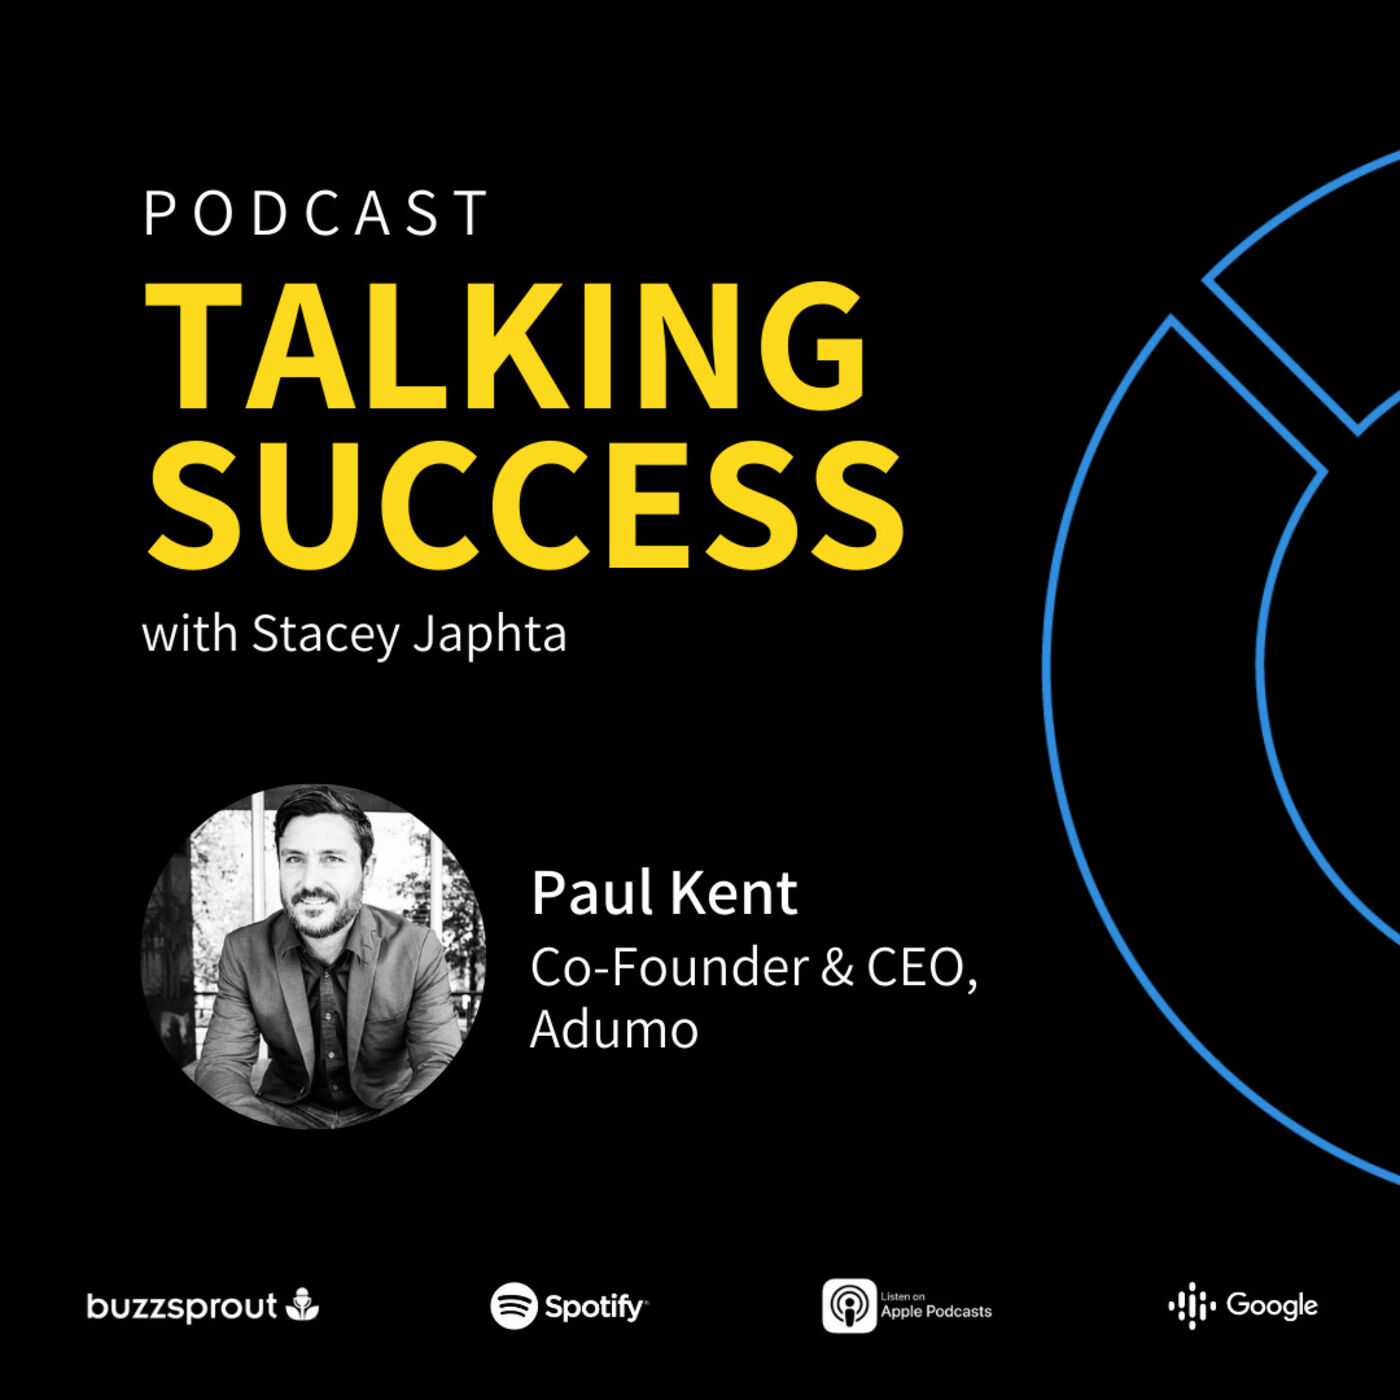 Paul Kent, CEO & Co-founder of Adumo - All things FinTech, Insourcing vs Outsourcing, & growing market share and diversifying through acquisitions